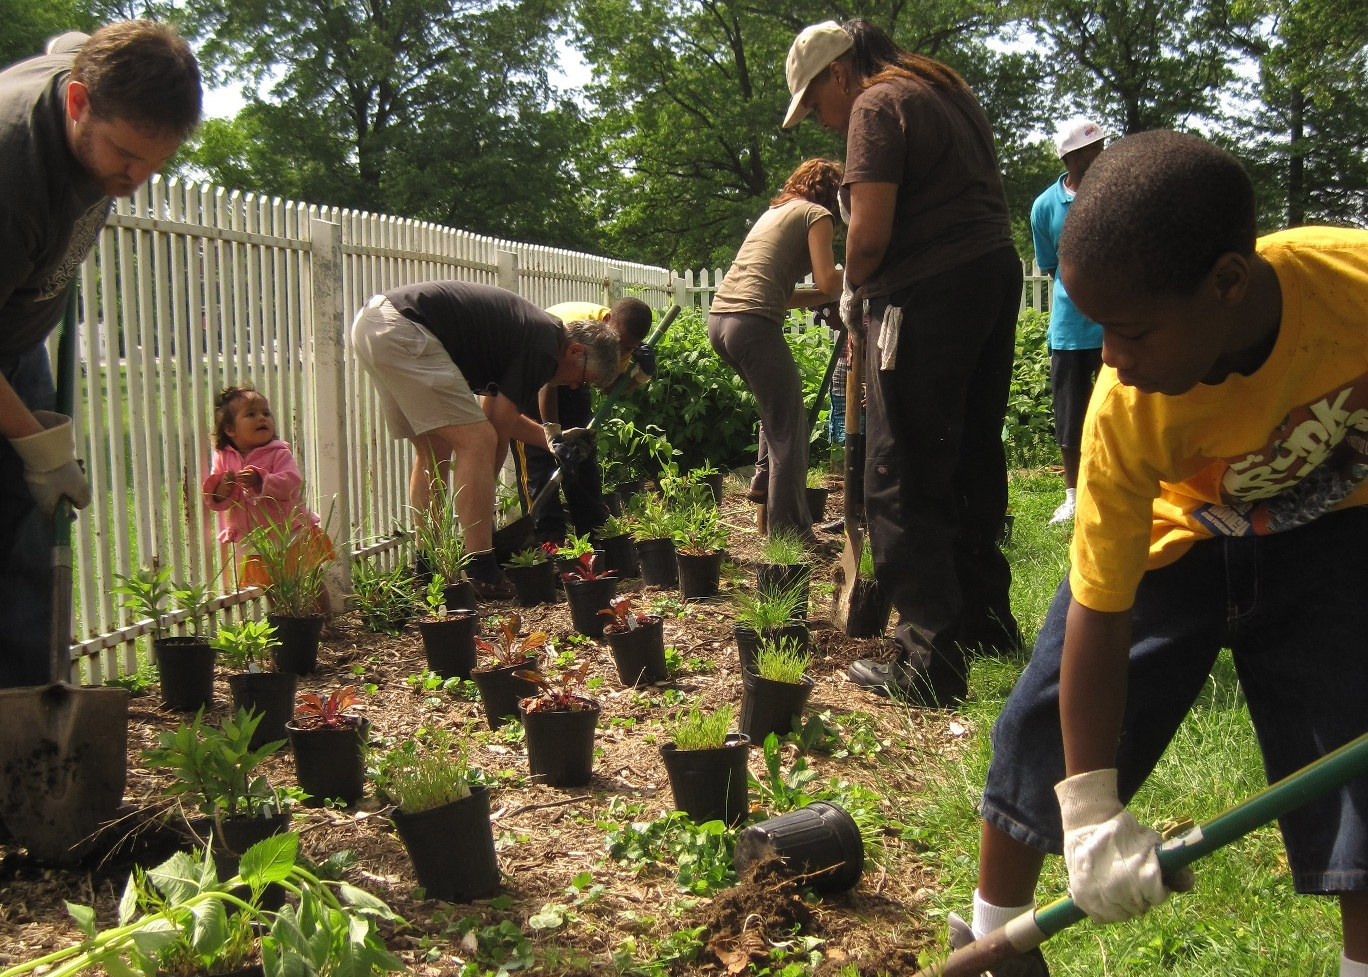 Volunteers in action at Woodford Orchard in Strawberry Mansion. | Philadelphia Orchard Project